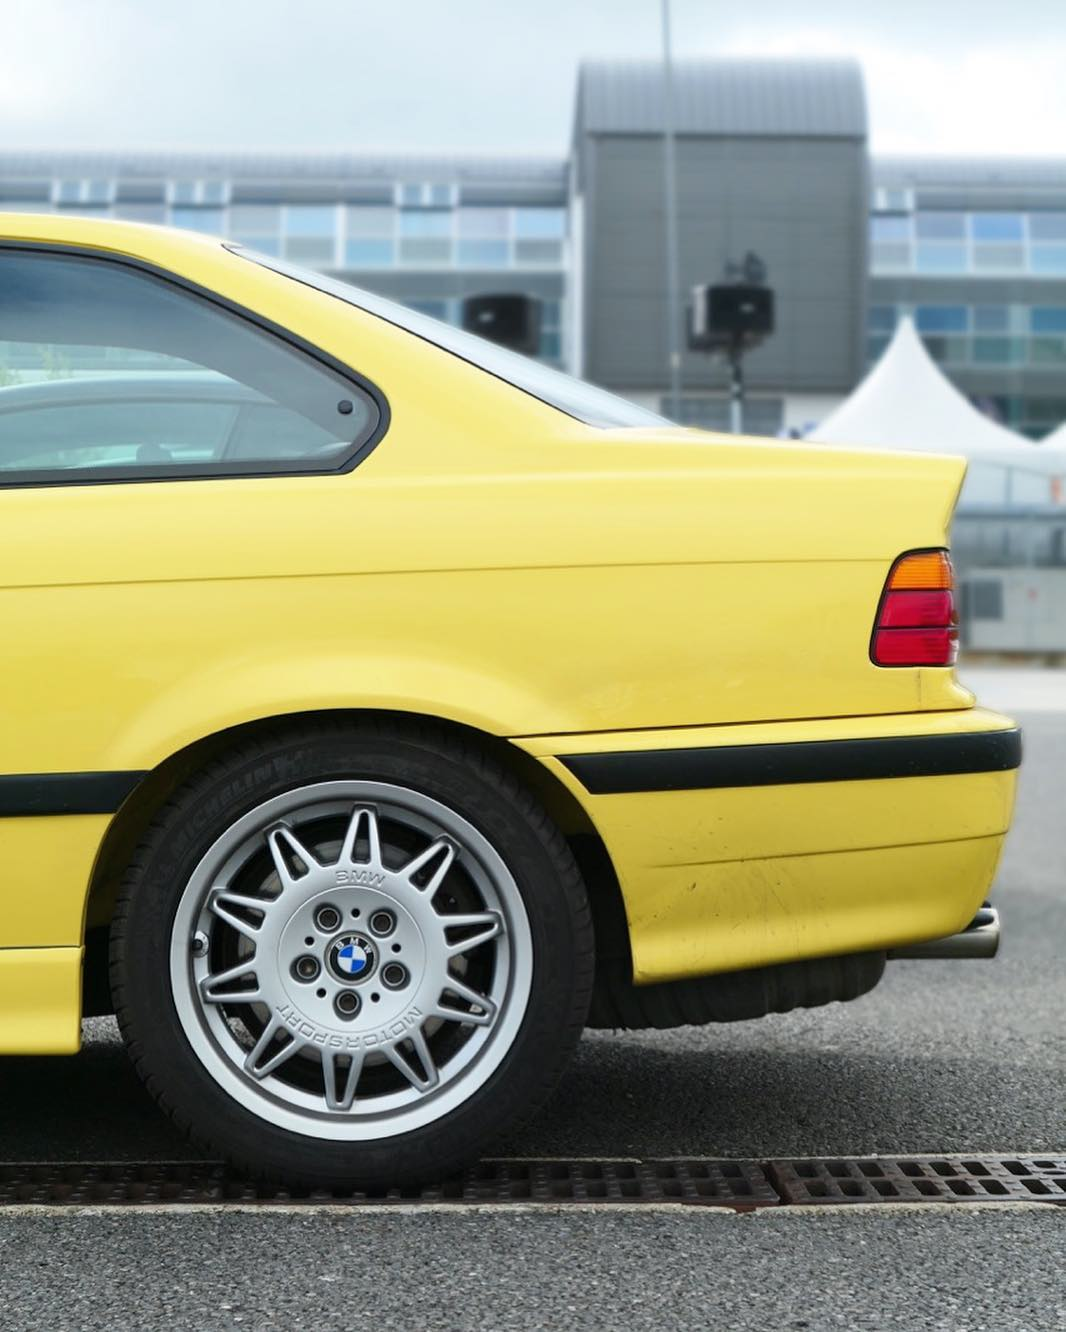 bmw m town rear m3 e36 road rug cars roadrugcars brothers car voiture auto automobile